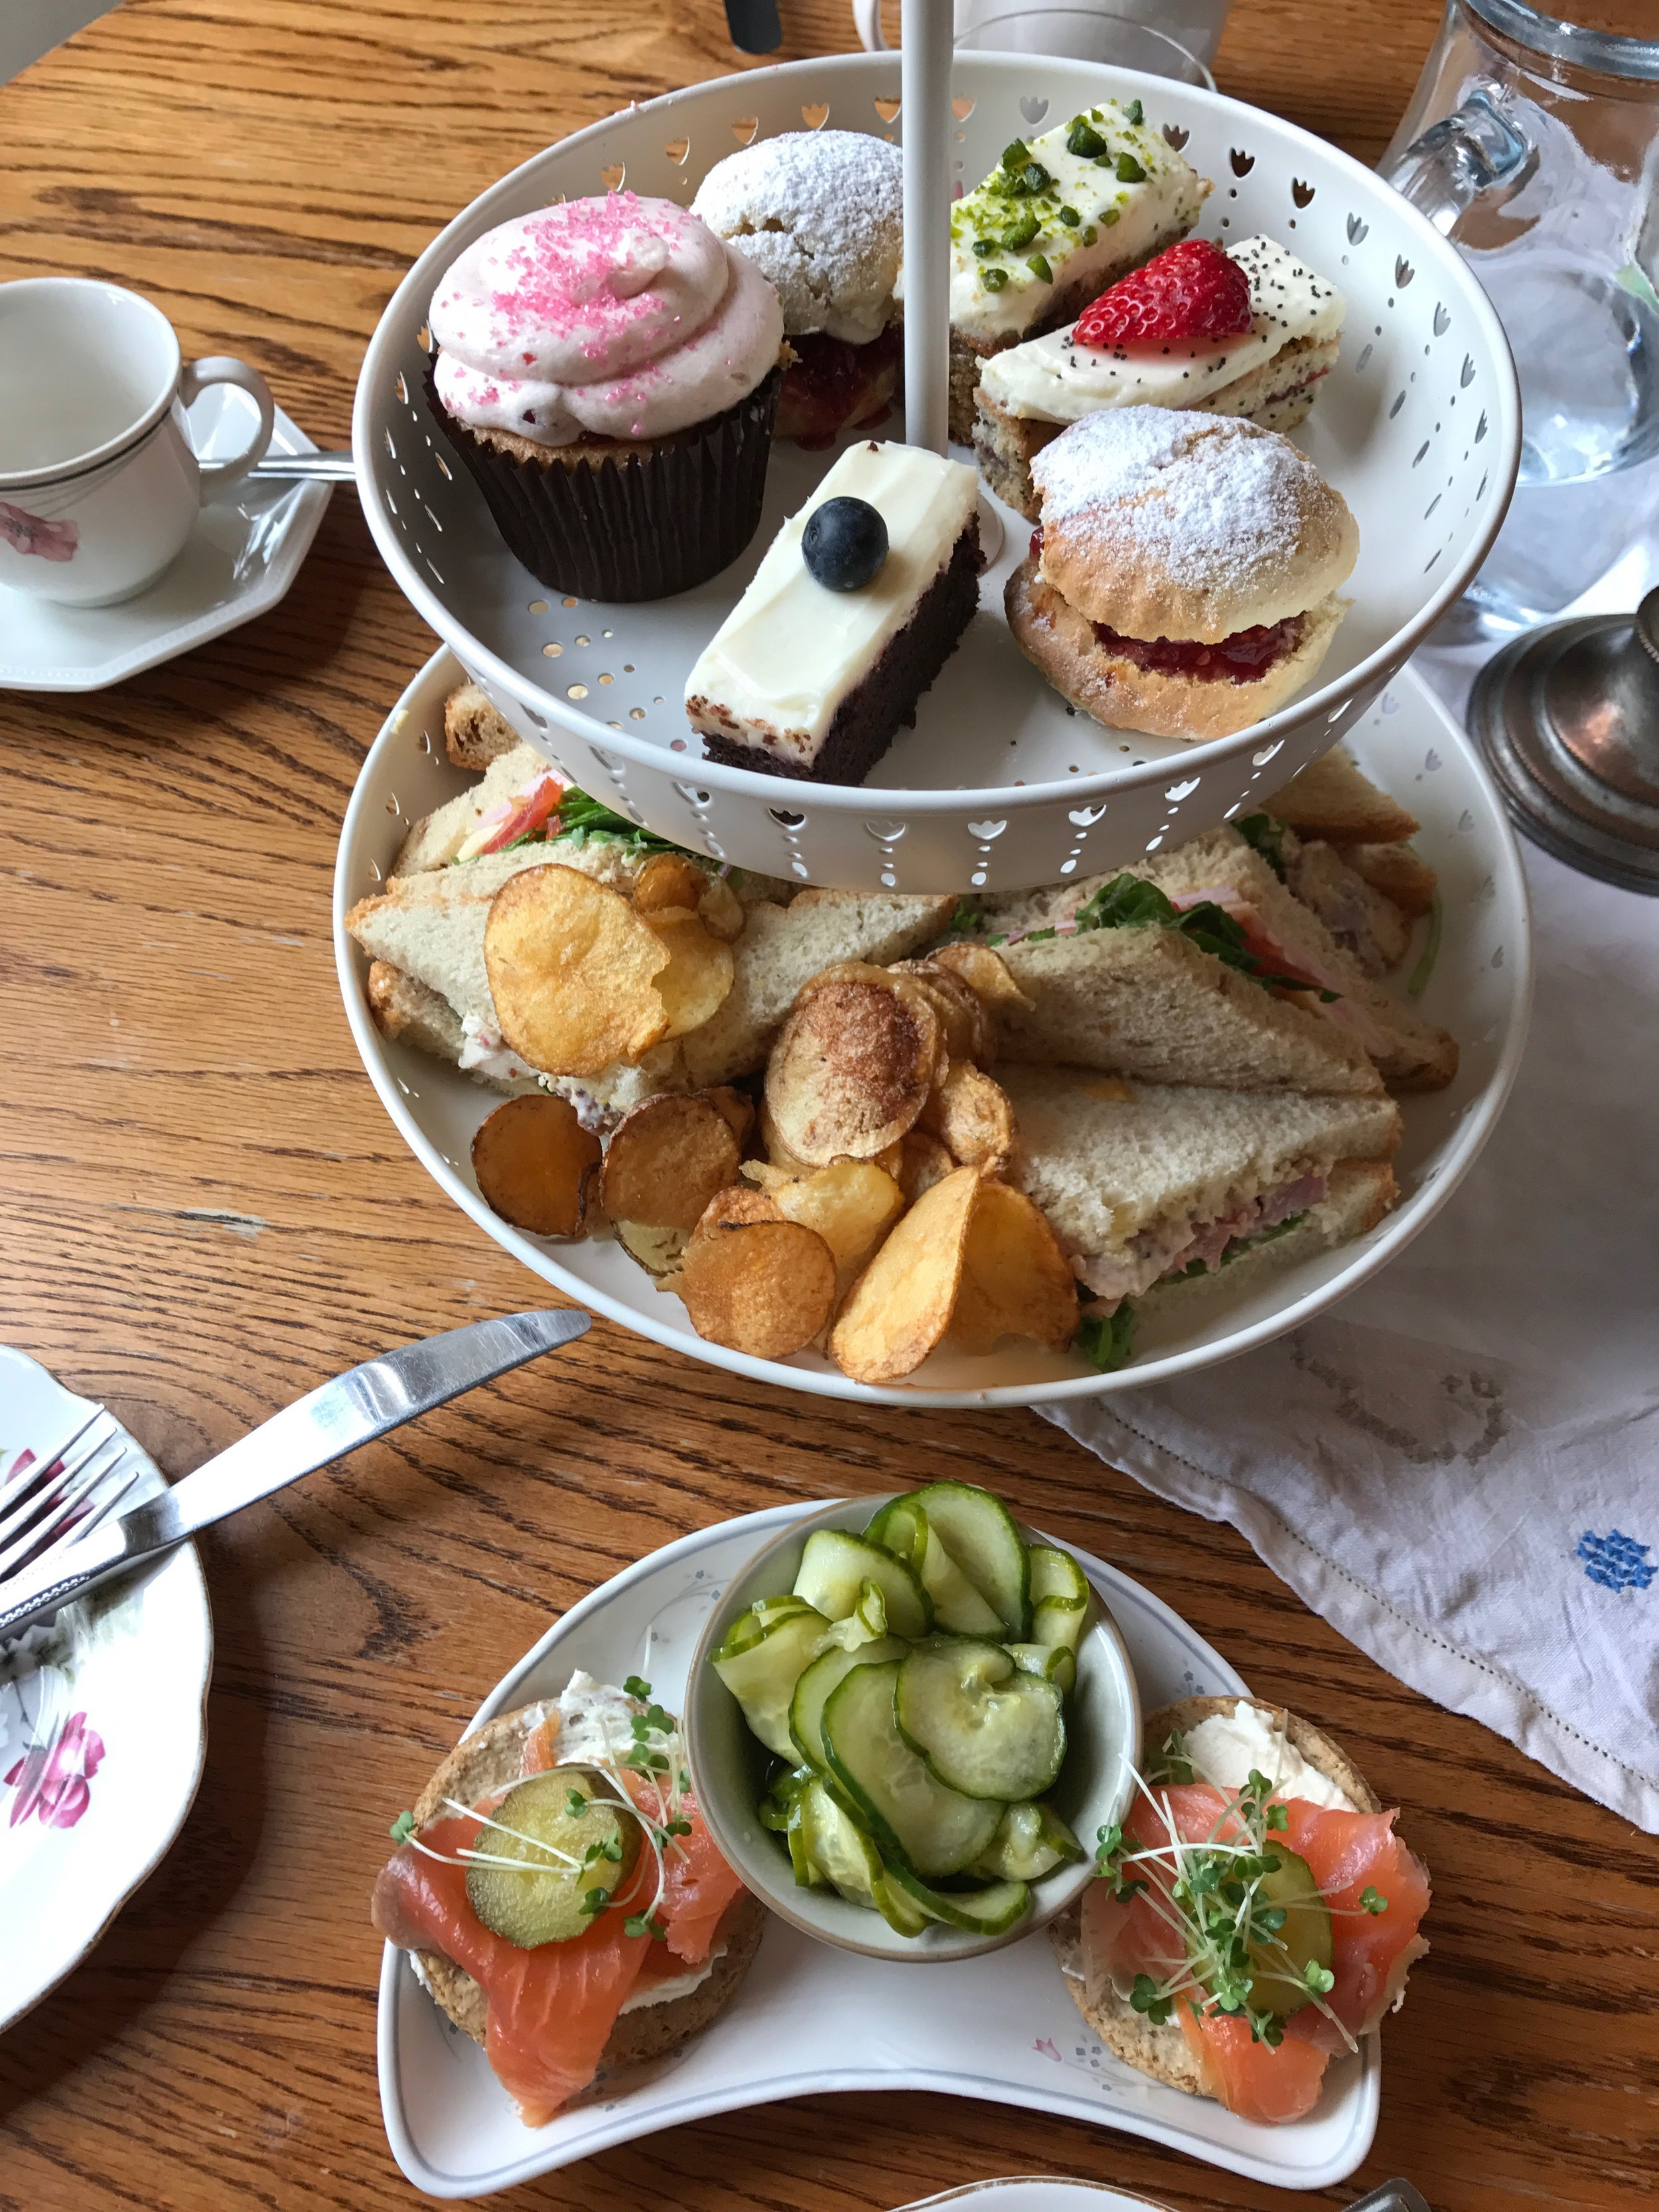 Afternoon Tea at The Butterfly and the Pig